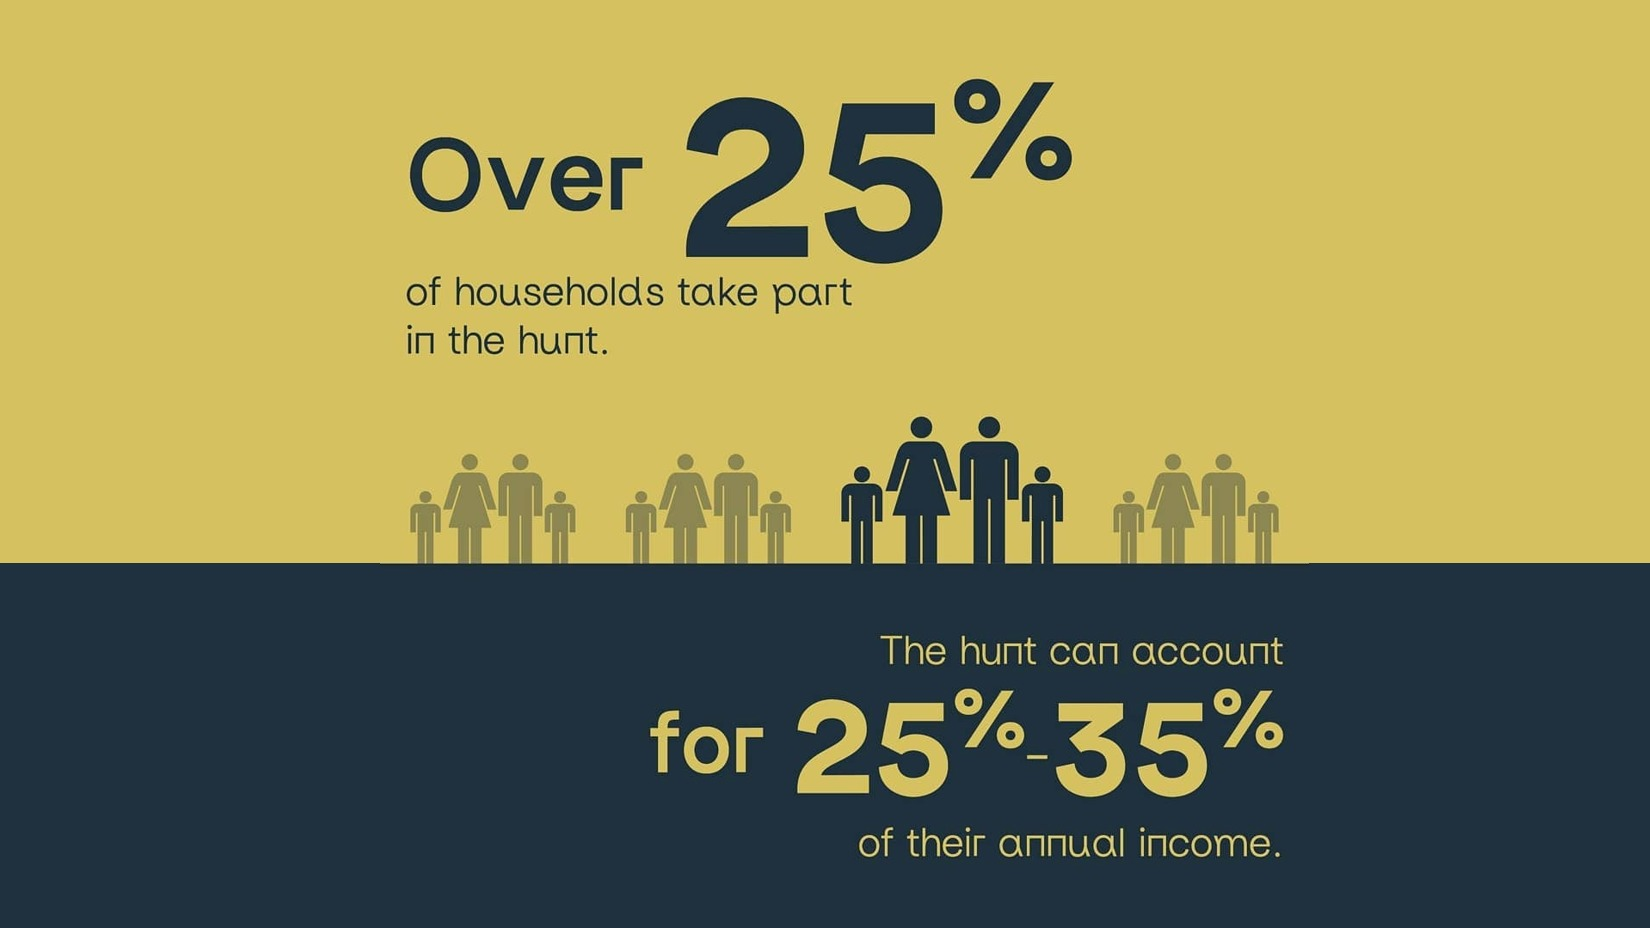 Over 25% of households take part in the hunt ENG